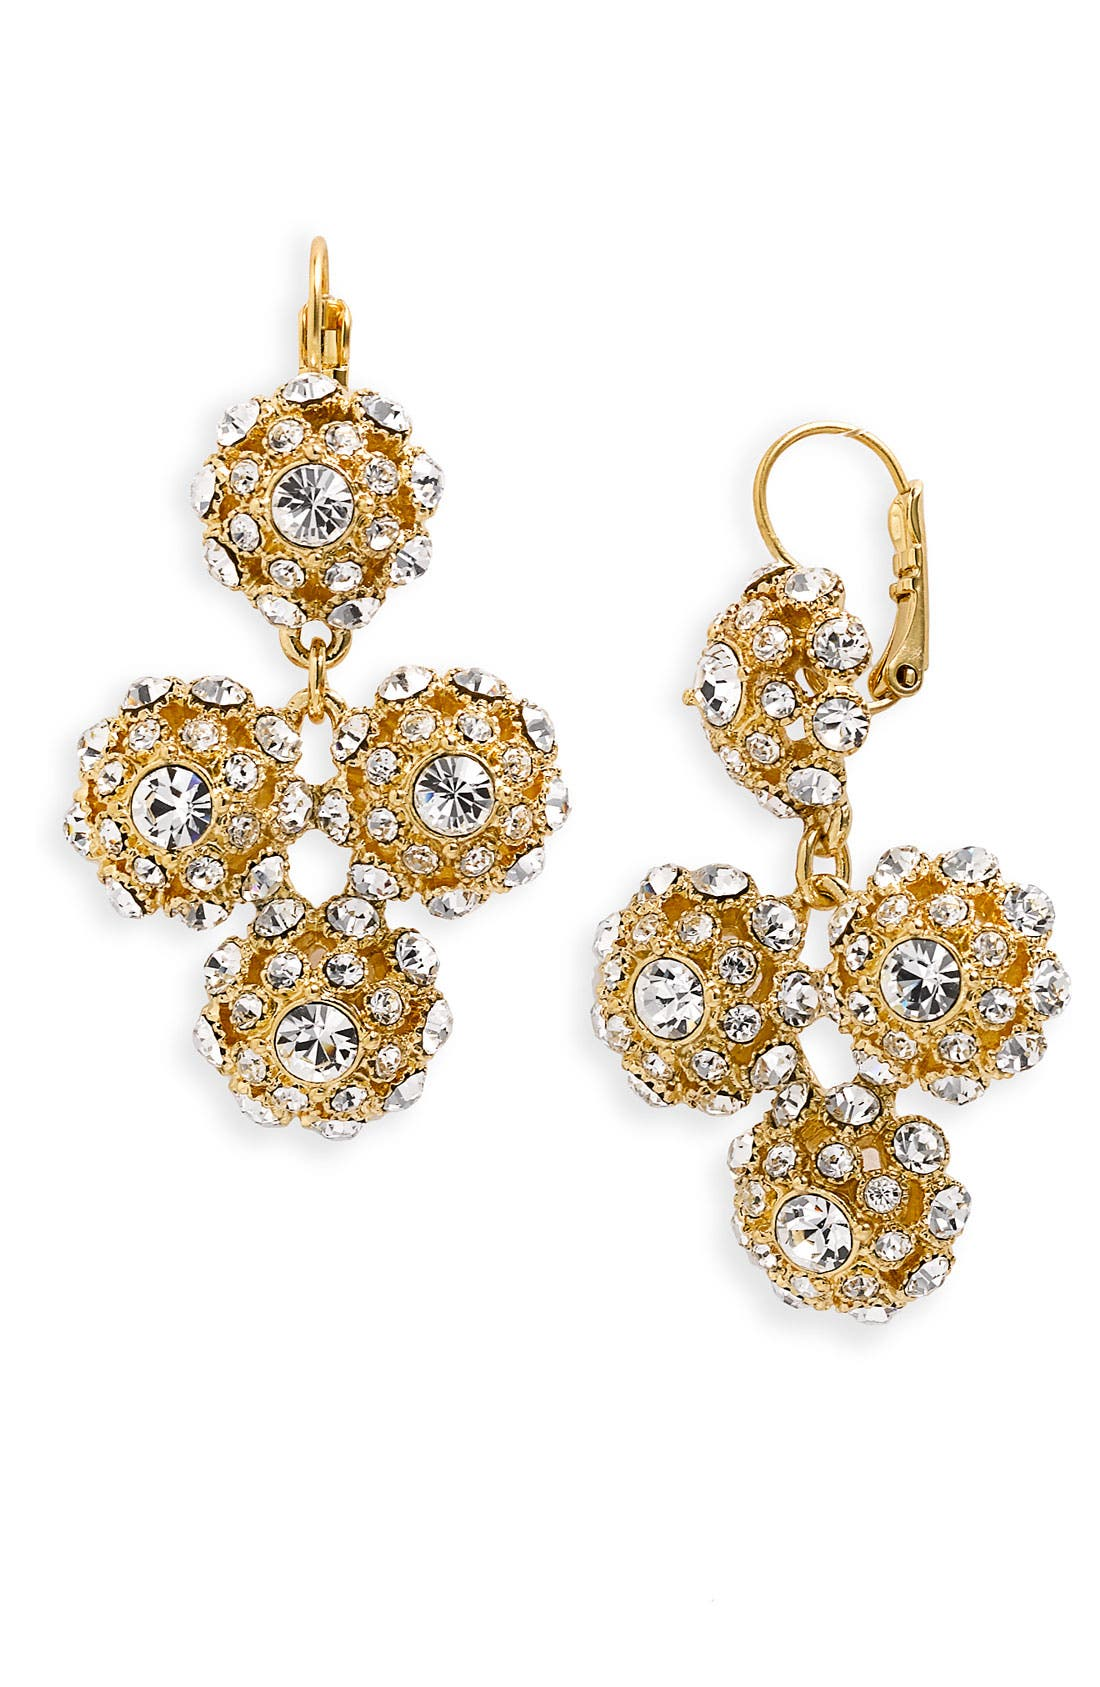 Alternate Image 1 Selected - kate spade new york 'putting on the ritz' chandelier earrings